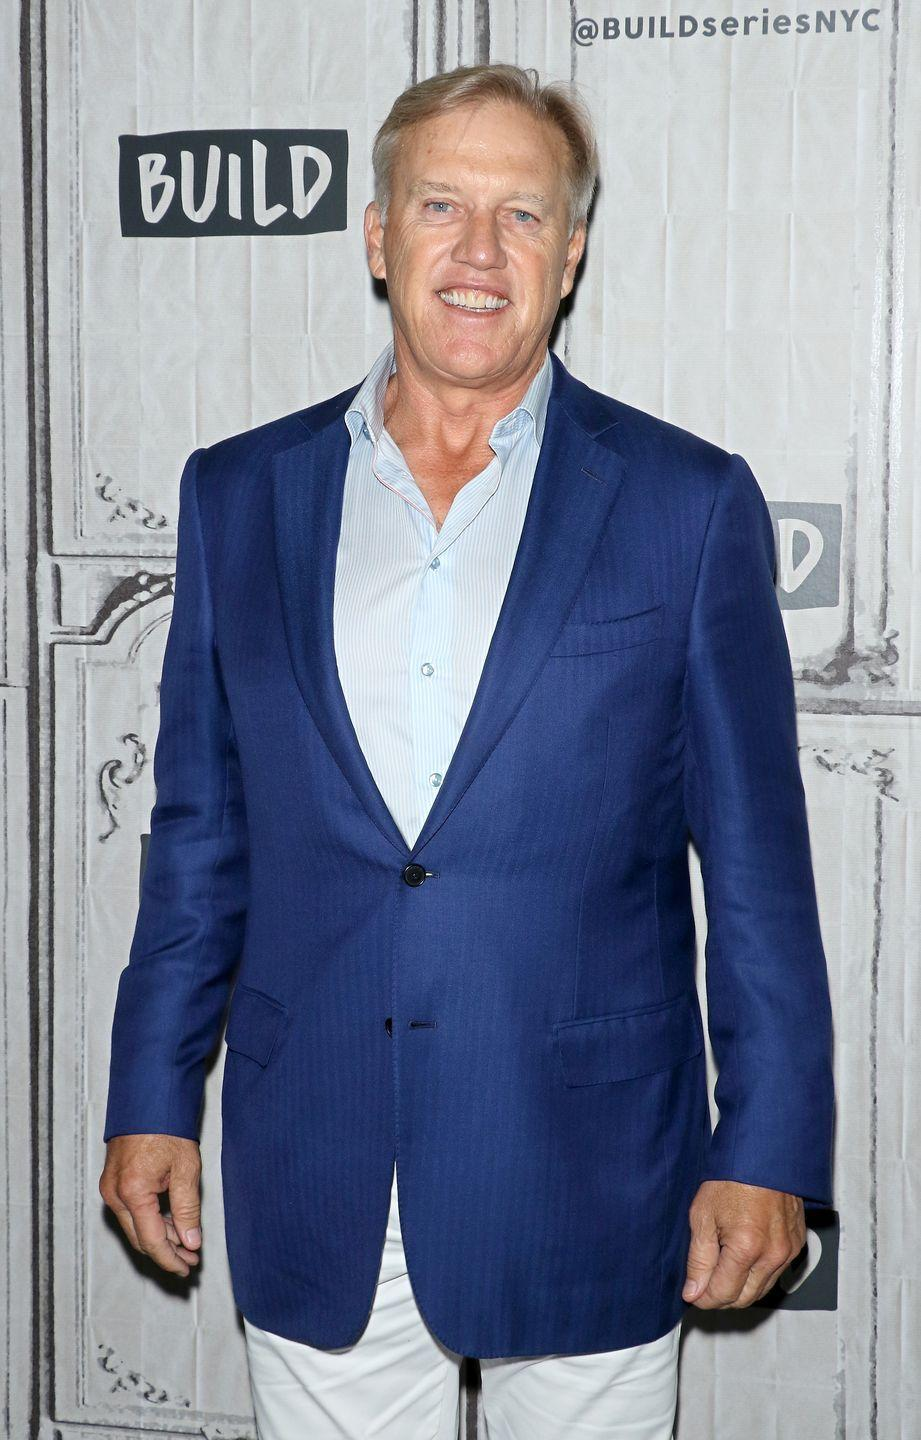 """<p>John Elway's impressive college football career at Stanford University led the quarterback to be the <a href=""""https://www.sports-reference.com/cfb/players/john-elway-1.html"""" rel=""""nofollow noopener"""" target=""""_blank"""" data-ylk=""""slk:number one draft pick"""" class=""""link rapid-noclick-resp"""">number one draft pick</a> in 1983. During his time on campus, Elway also made sure to have some fun, <a href=""""https://www.owu.edu/student-life/fraternity-sorority-life/leadership-and-councils/interfraternity-council-ifc/delta-tau-delta/"""" rel=""""nofollow noopener"""" target=""""_blank"""" data-ylk=""""slk:pledging Delta Tau Delta"""" class=""""link rapid-noclick-resp"""">pledging Delta Tau Delta</a>. </p>"""